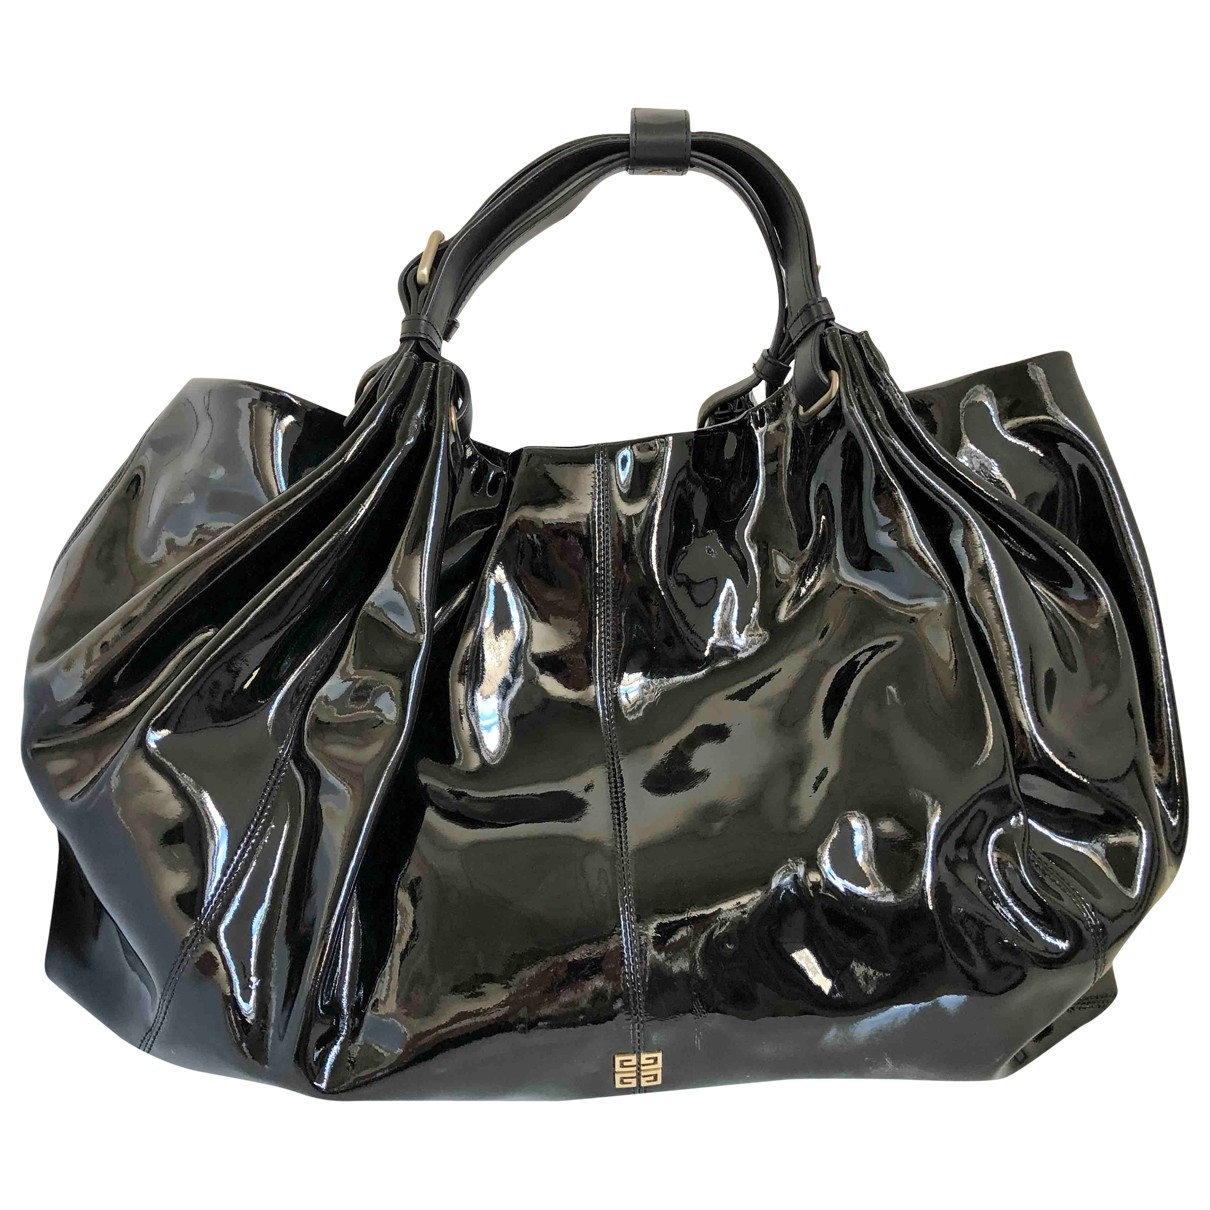 Givenchy \N Black Patent leather handbag for Women \N